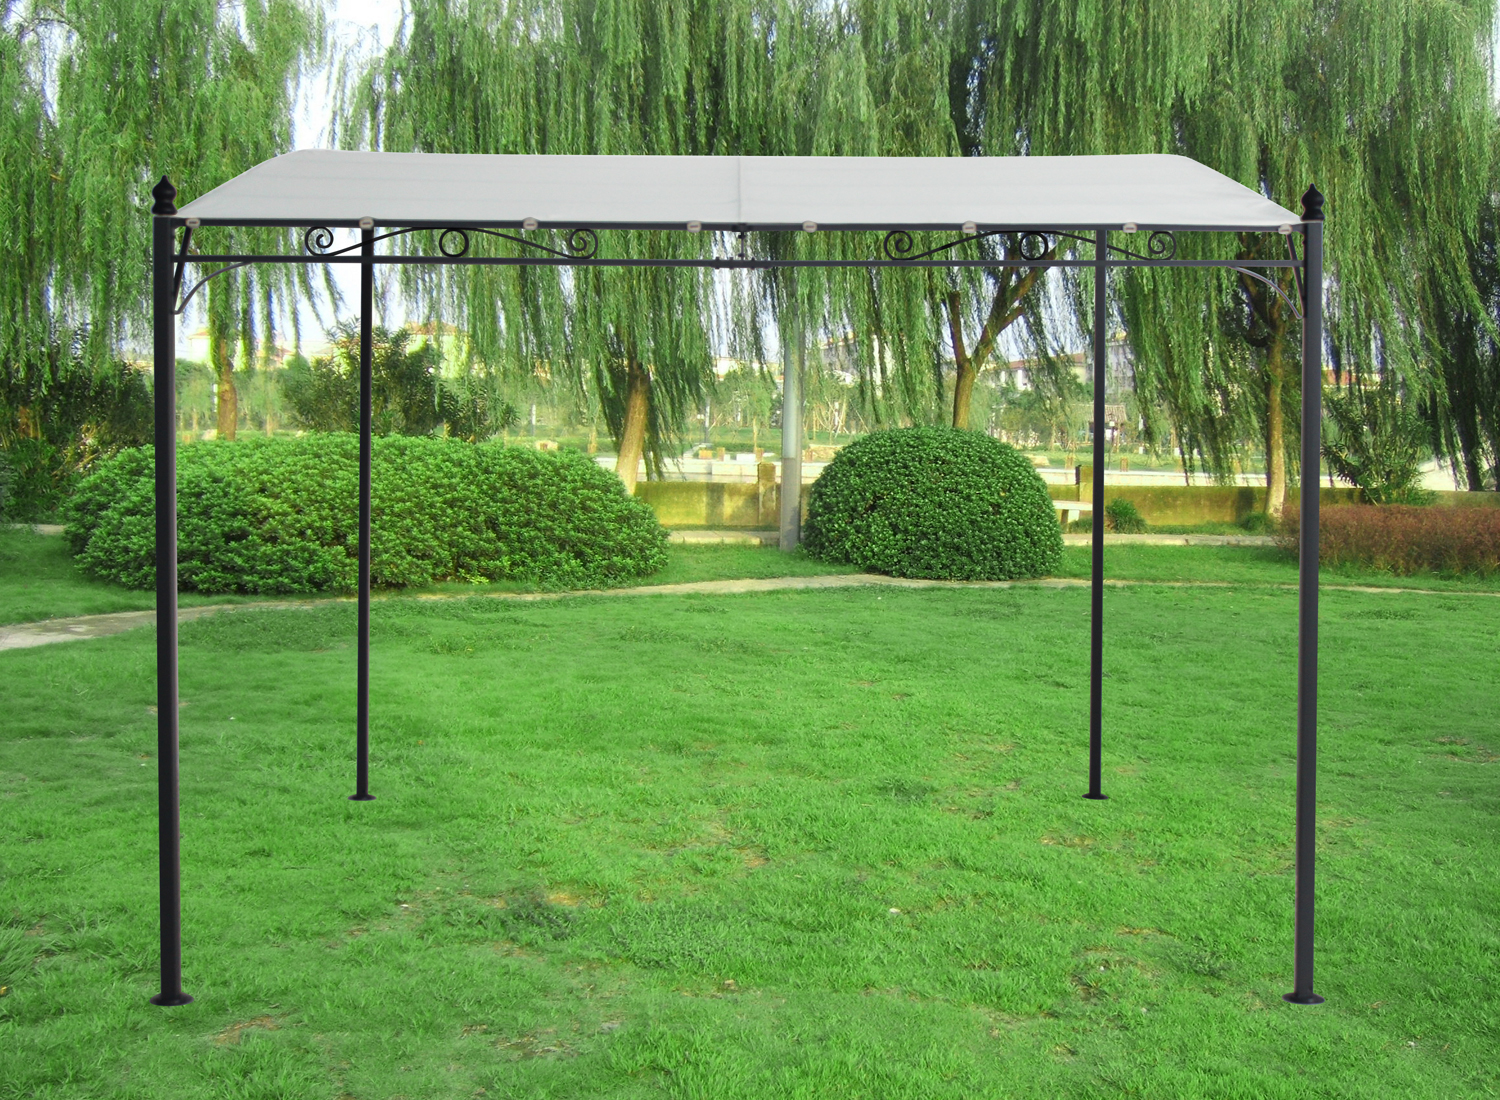 3x3m metal wall gazebo canopy pergola awning shade marquee shelter door porch. Black Bedroom Furniture Sets. Home Design Ideas